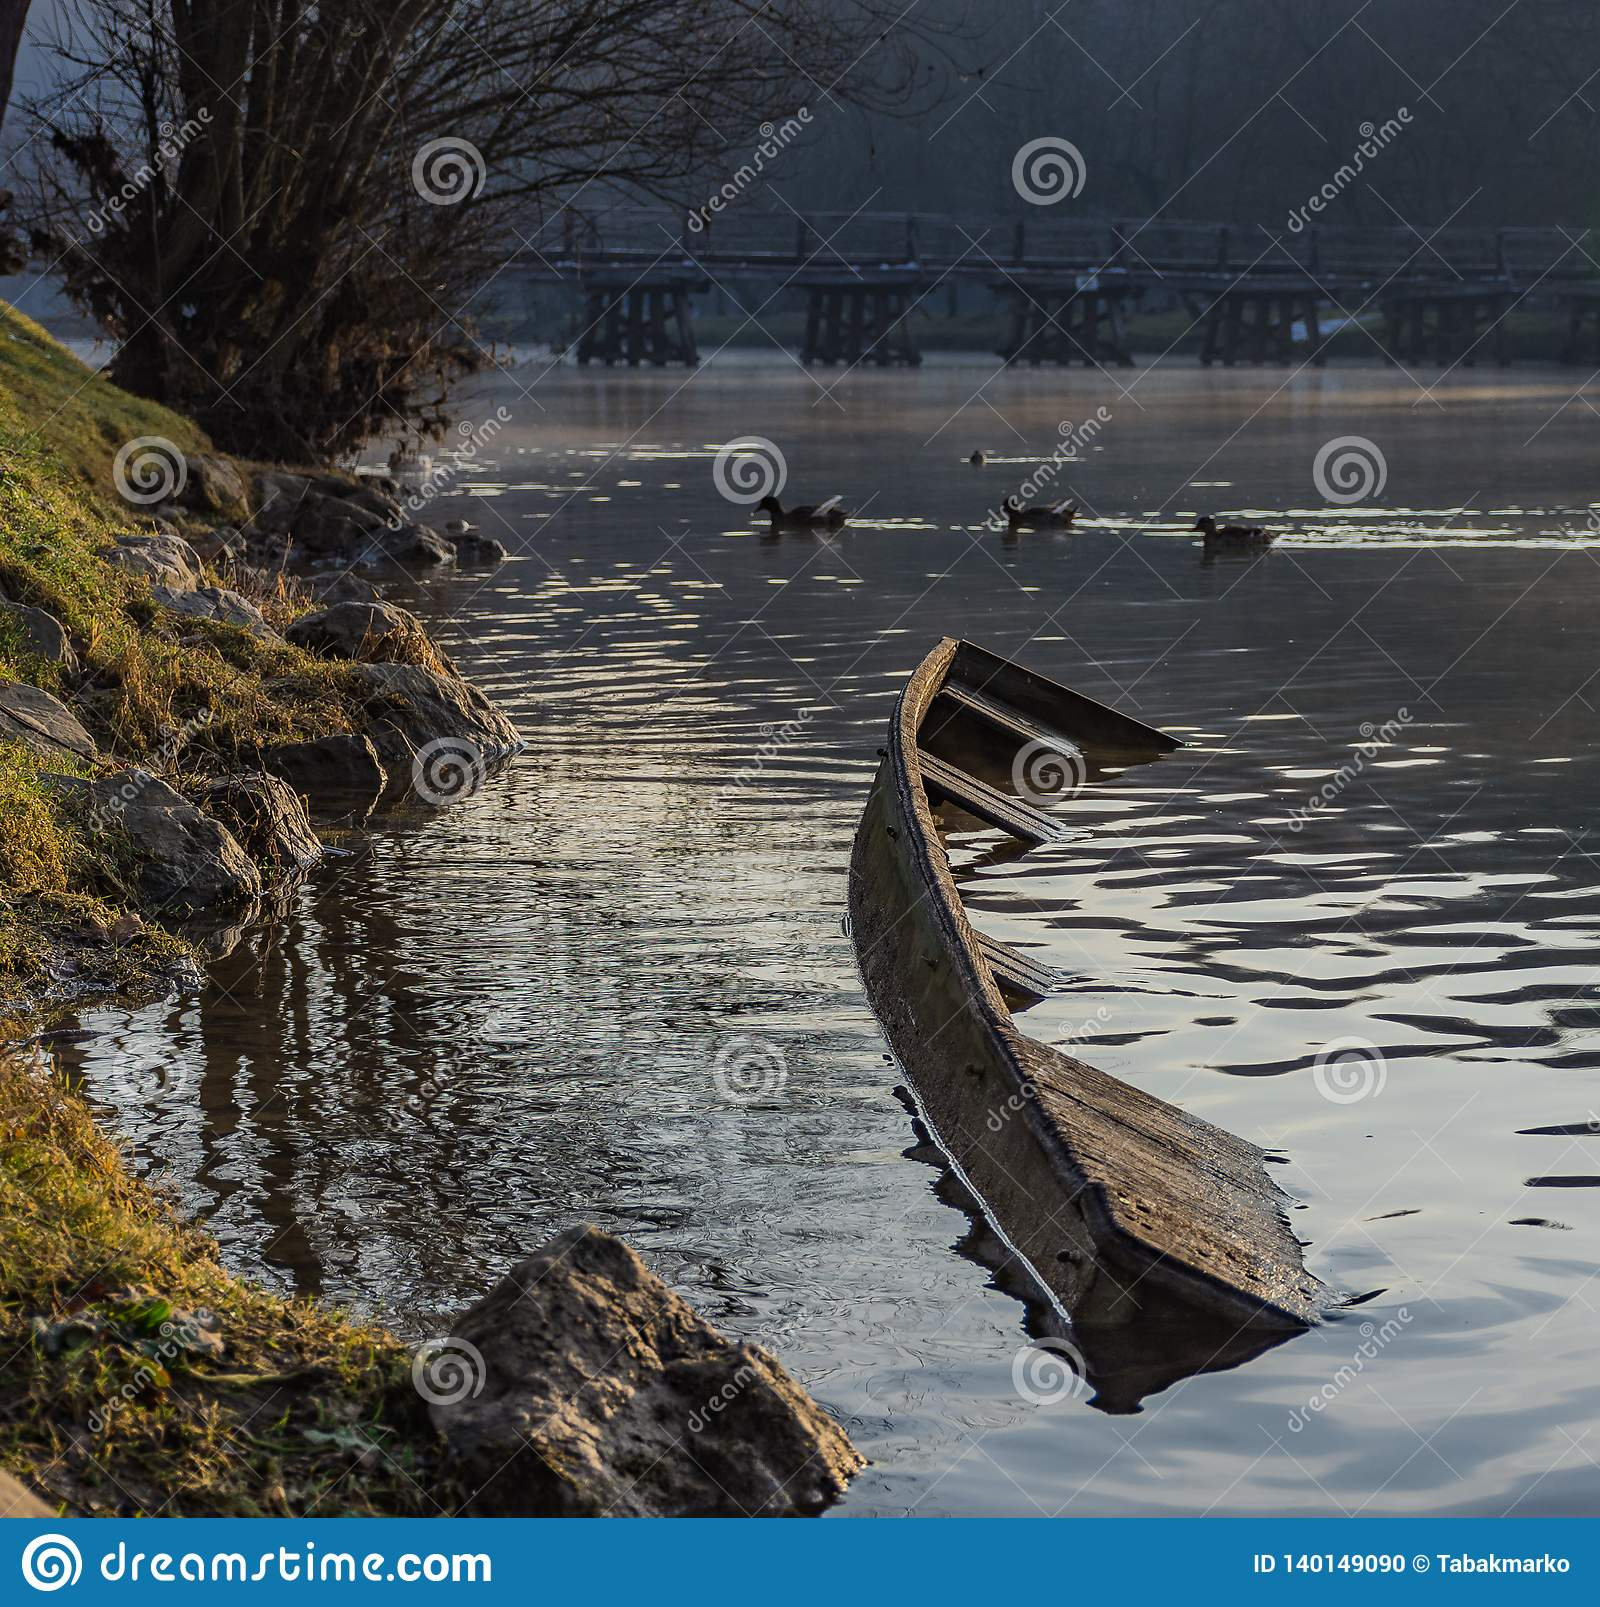 Sunken river boat on the coast of a river